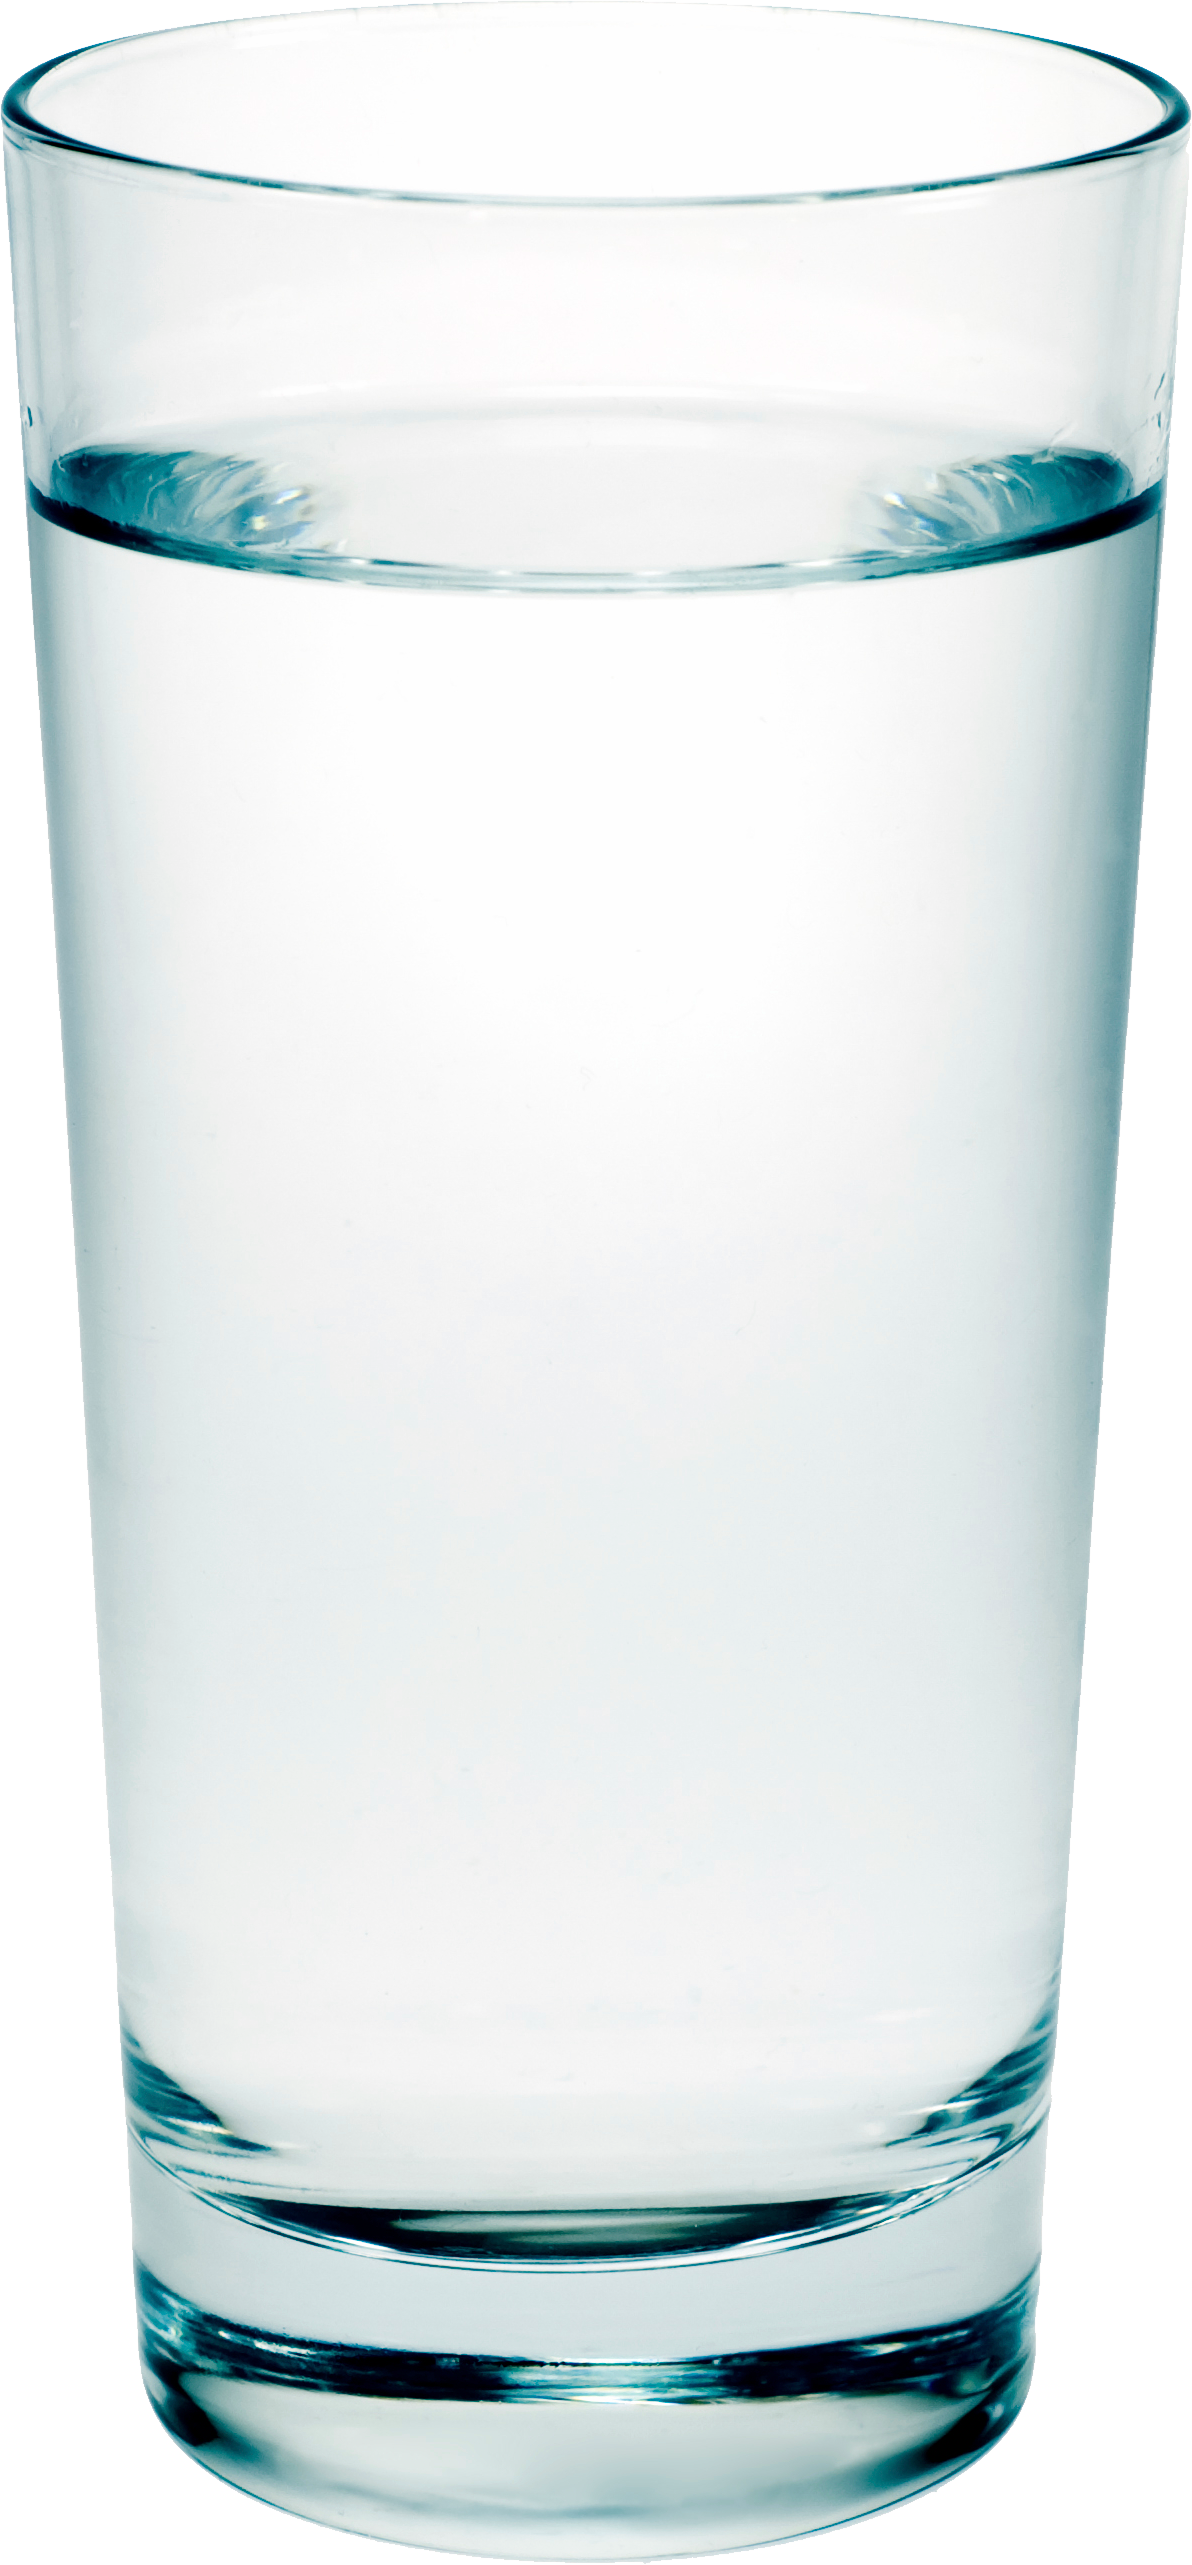 Water glass PNG images free download.